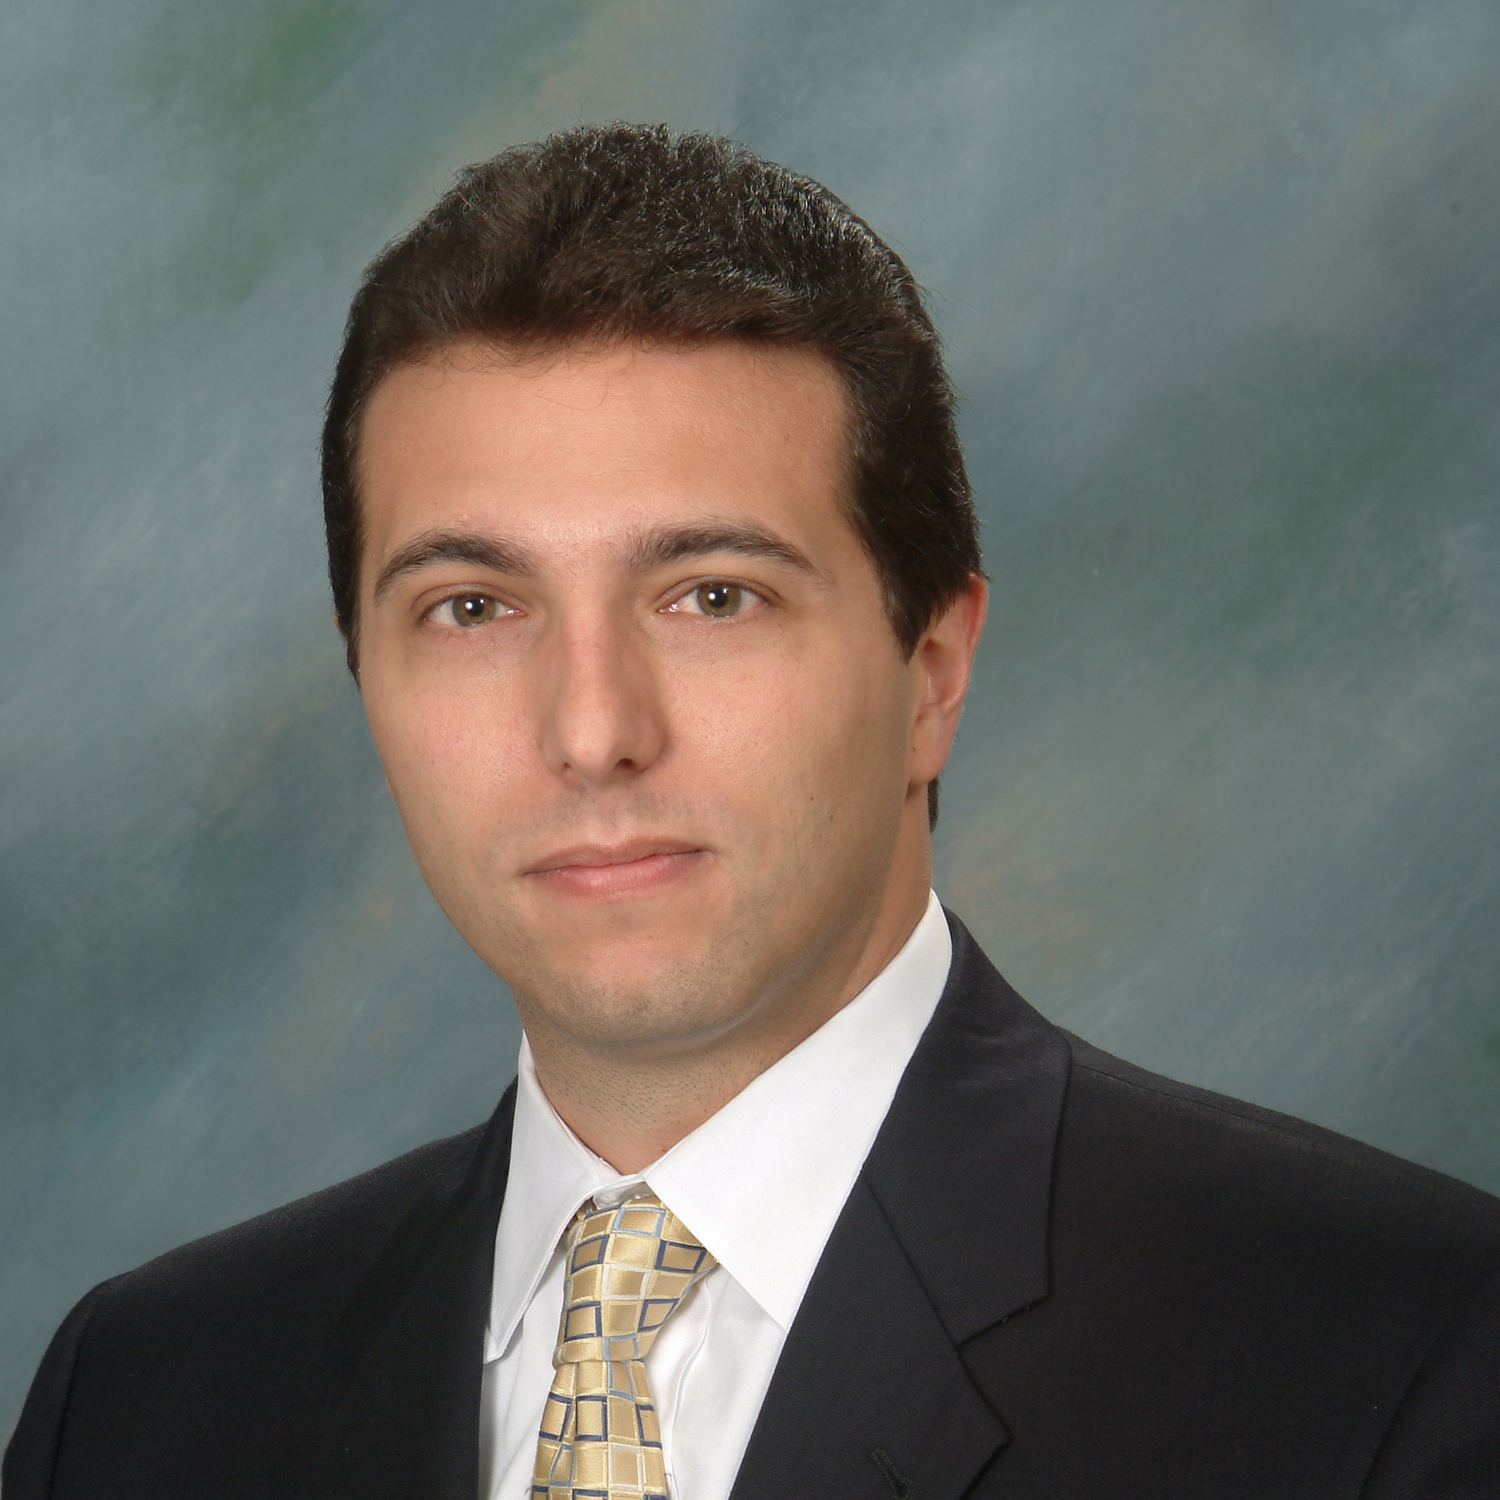 Michael Greco, financial advisor Newton NJ